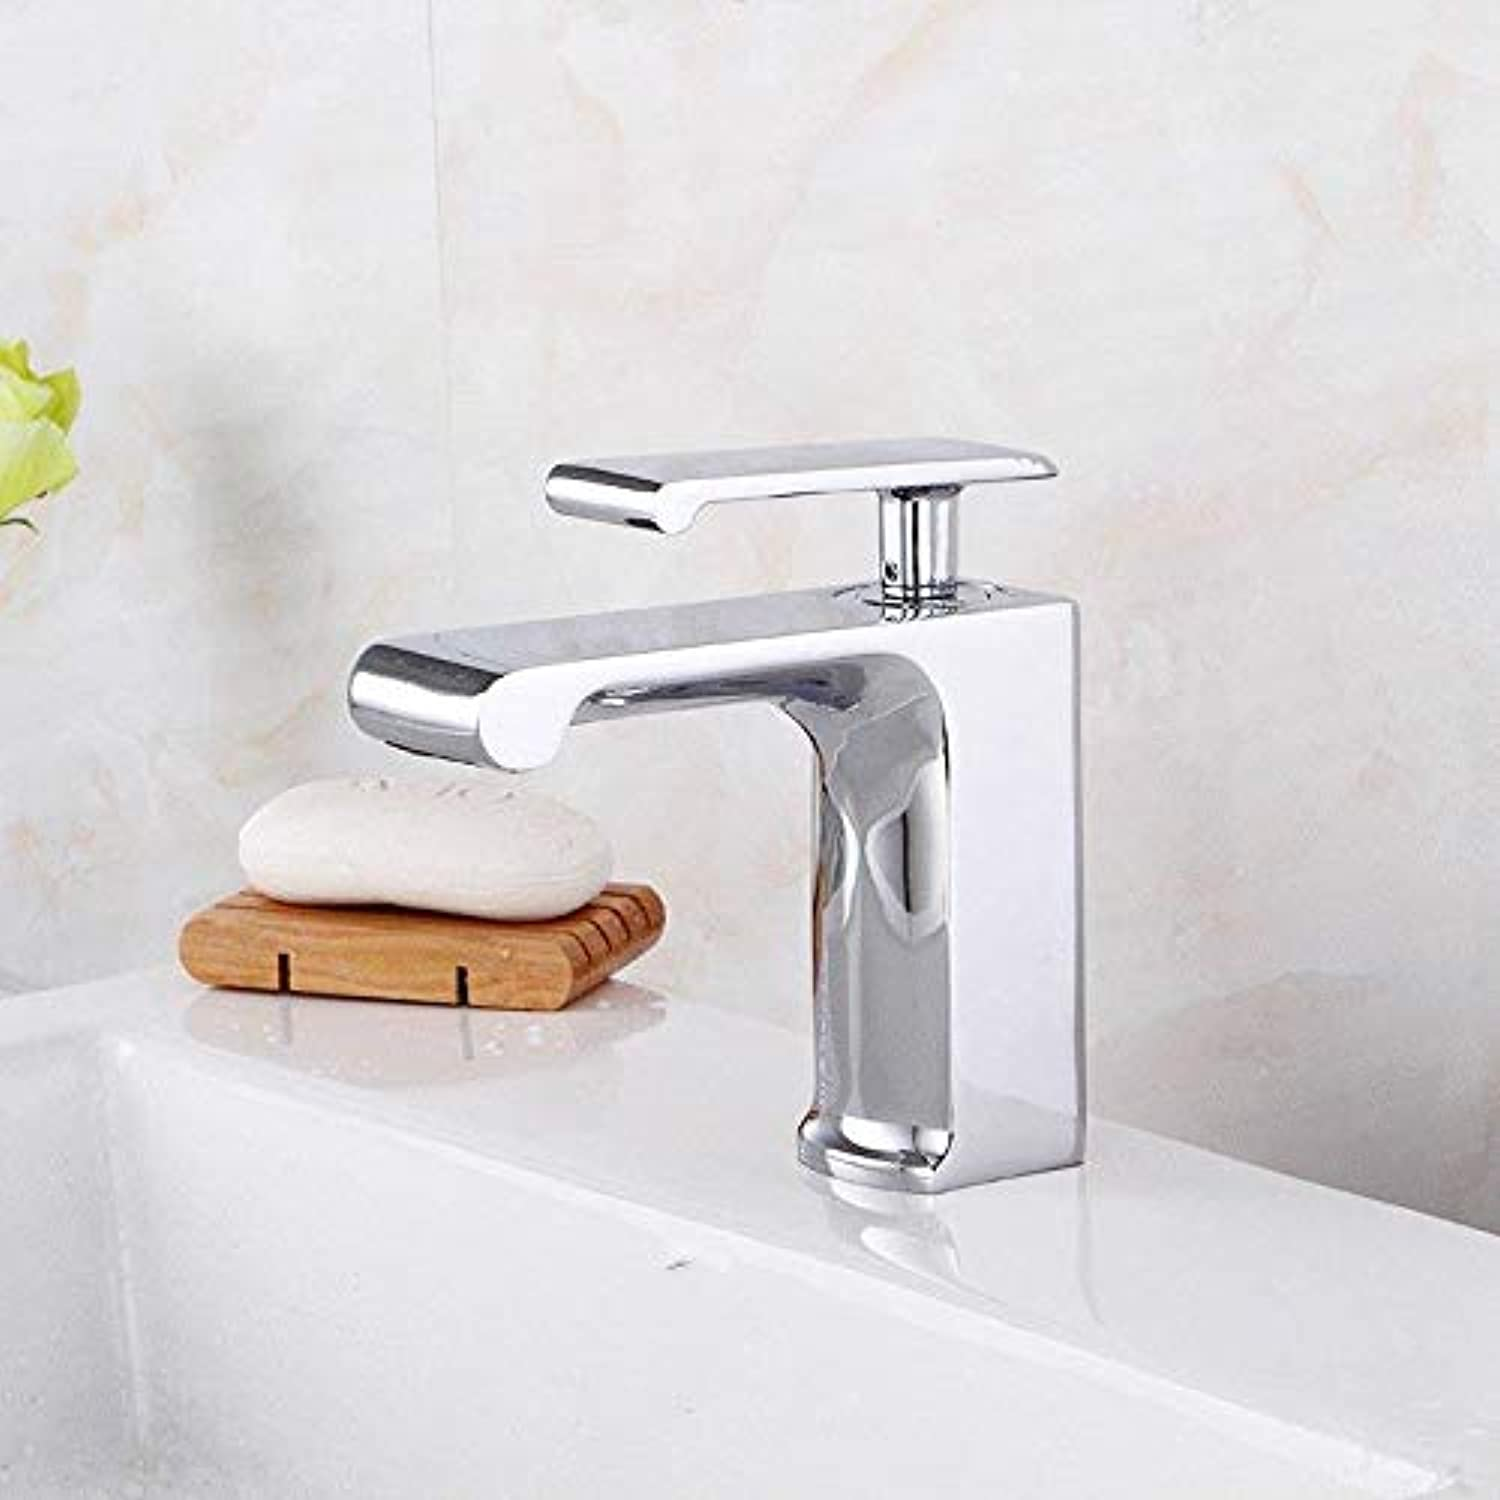 Taps Faucet Wrench-Style Chrome-Plated Brass Faucet Single-Panel Faucet